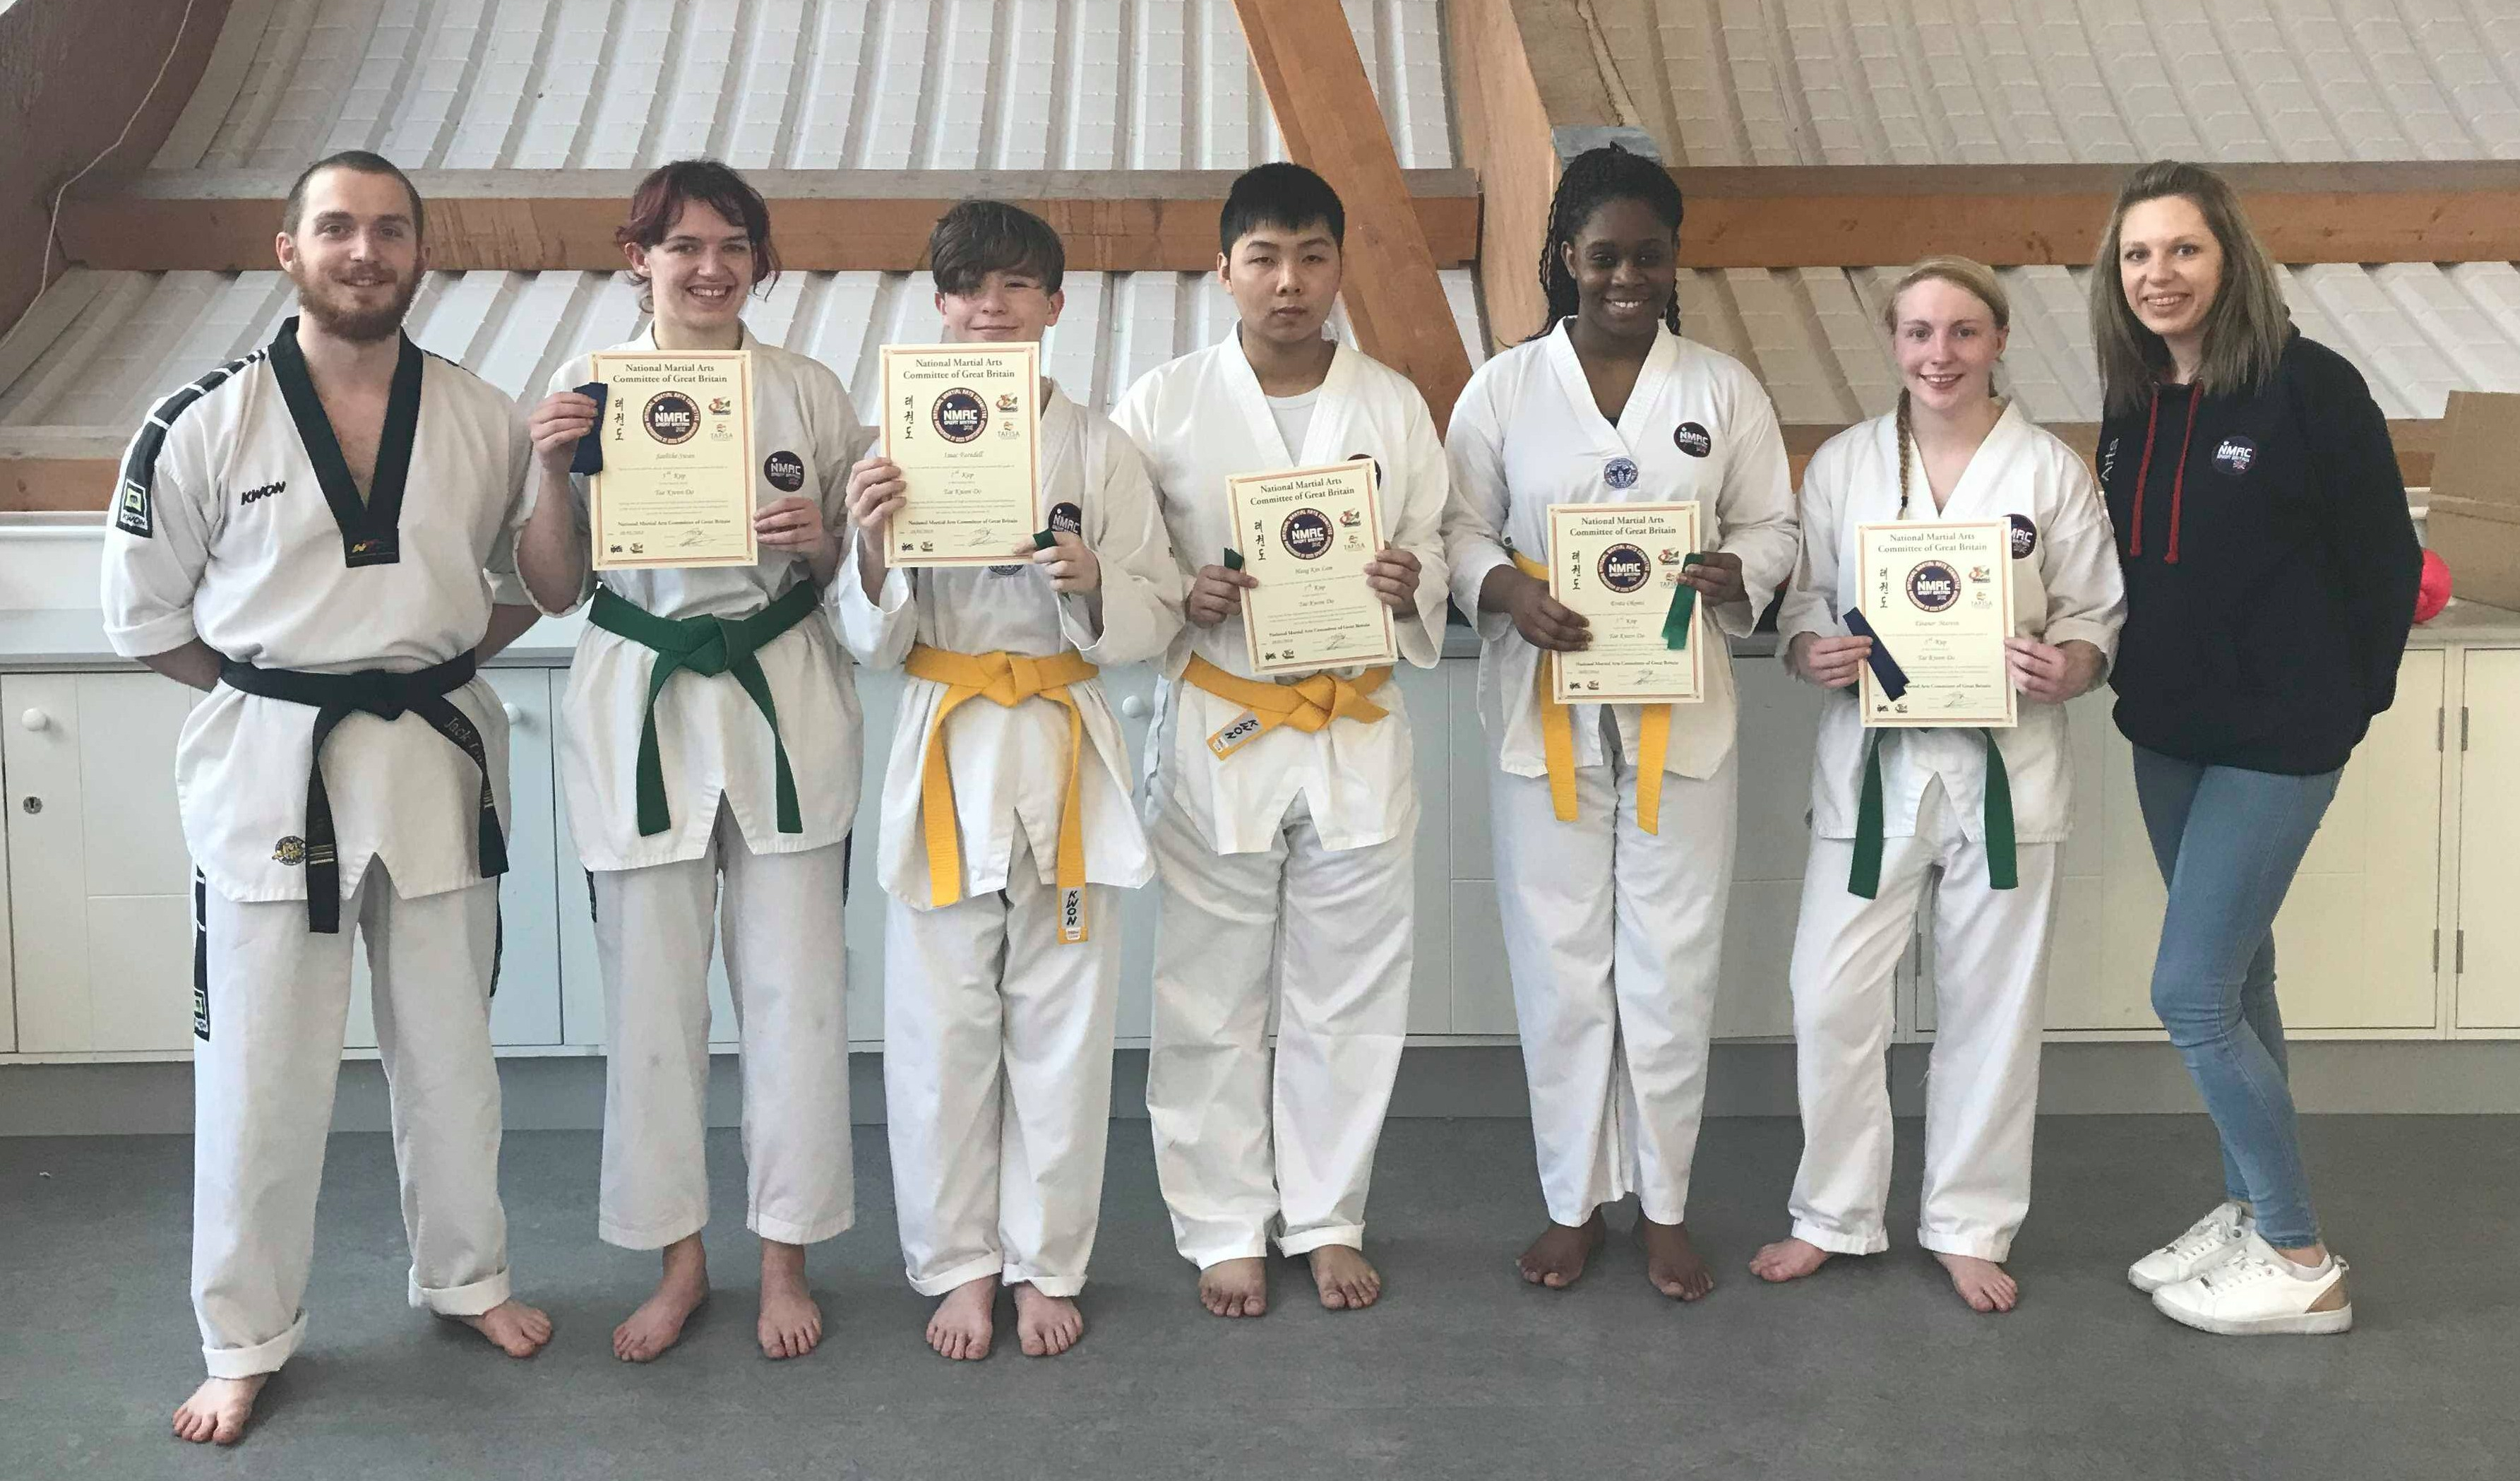 Strikers Taekwondo Portsmouth grading adult class